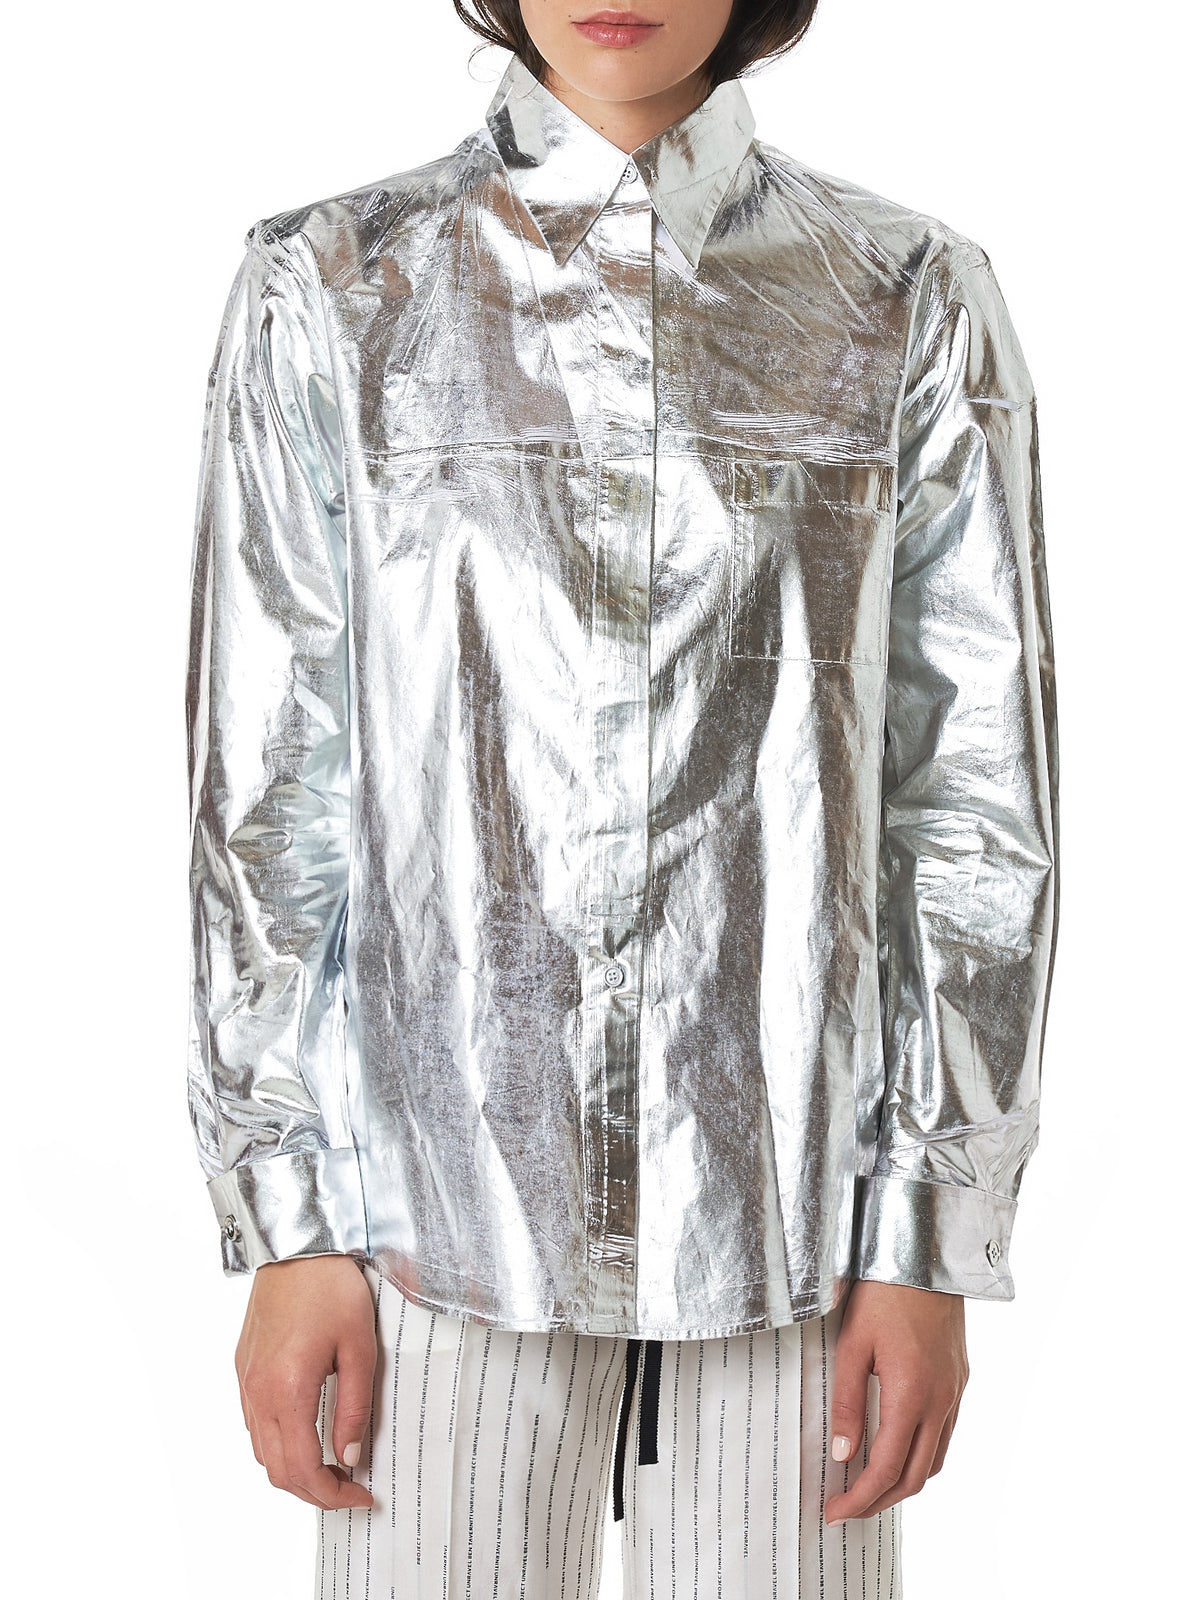 MM6 Maison Margiela Metallic Shirt - Hlorenzo Front